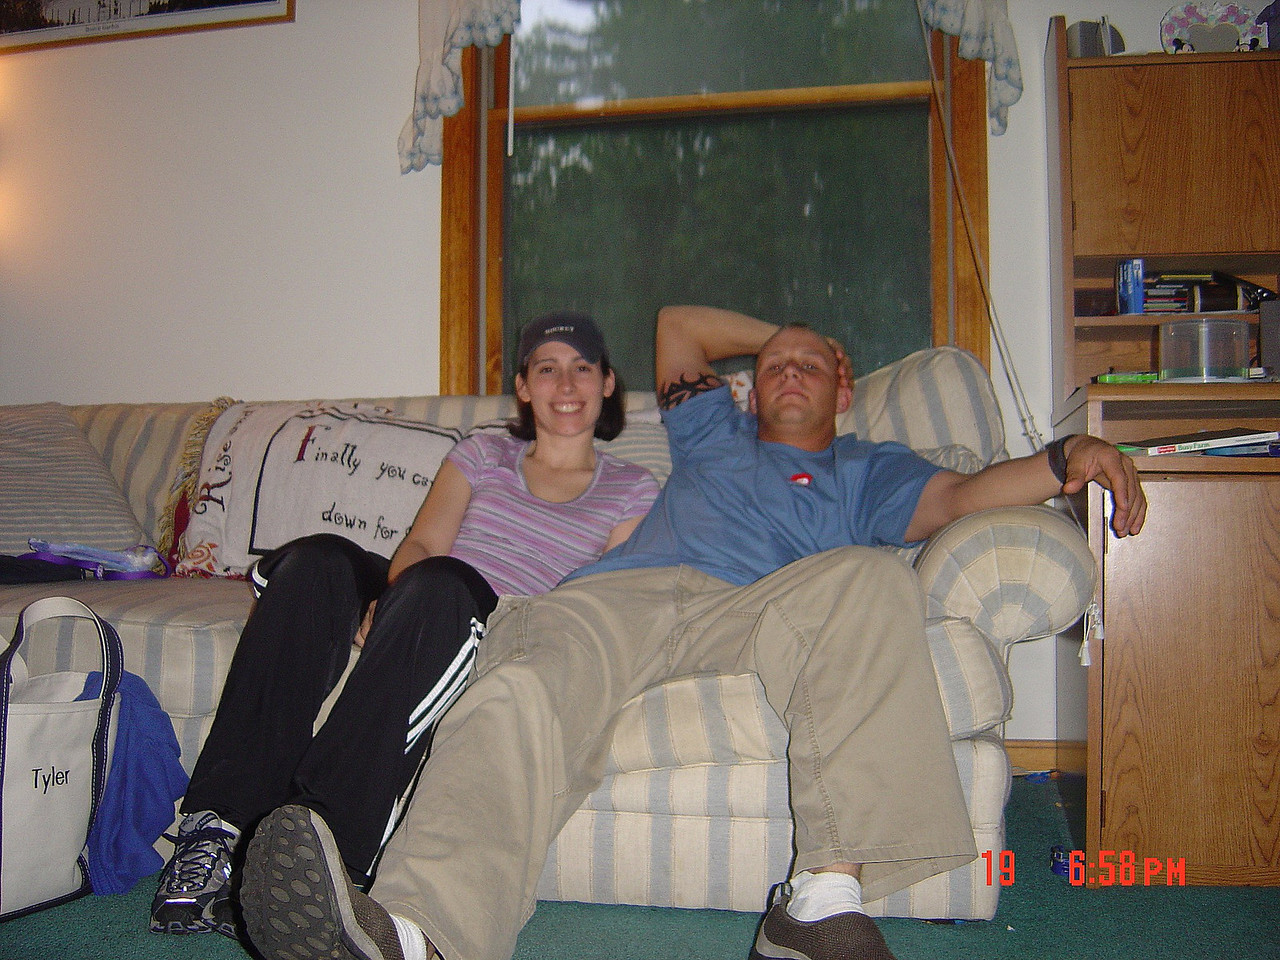 Betsy_and_Shawn_05-19-04